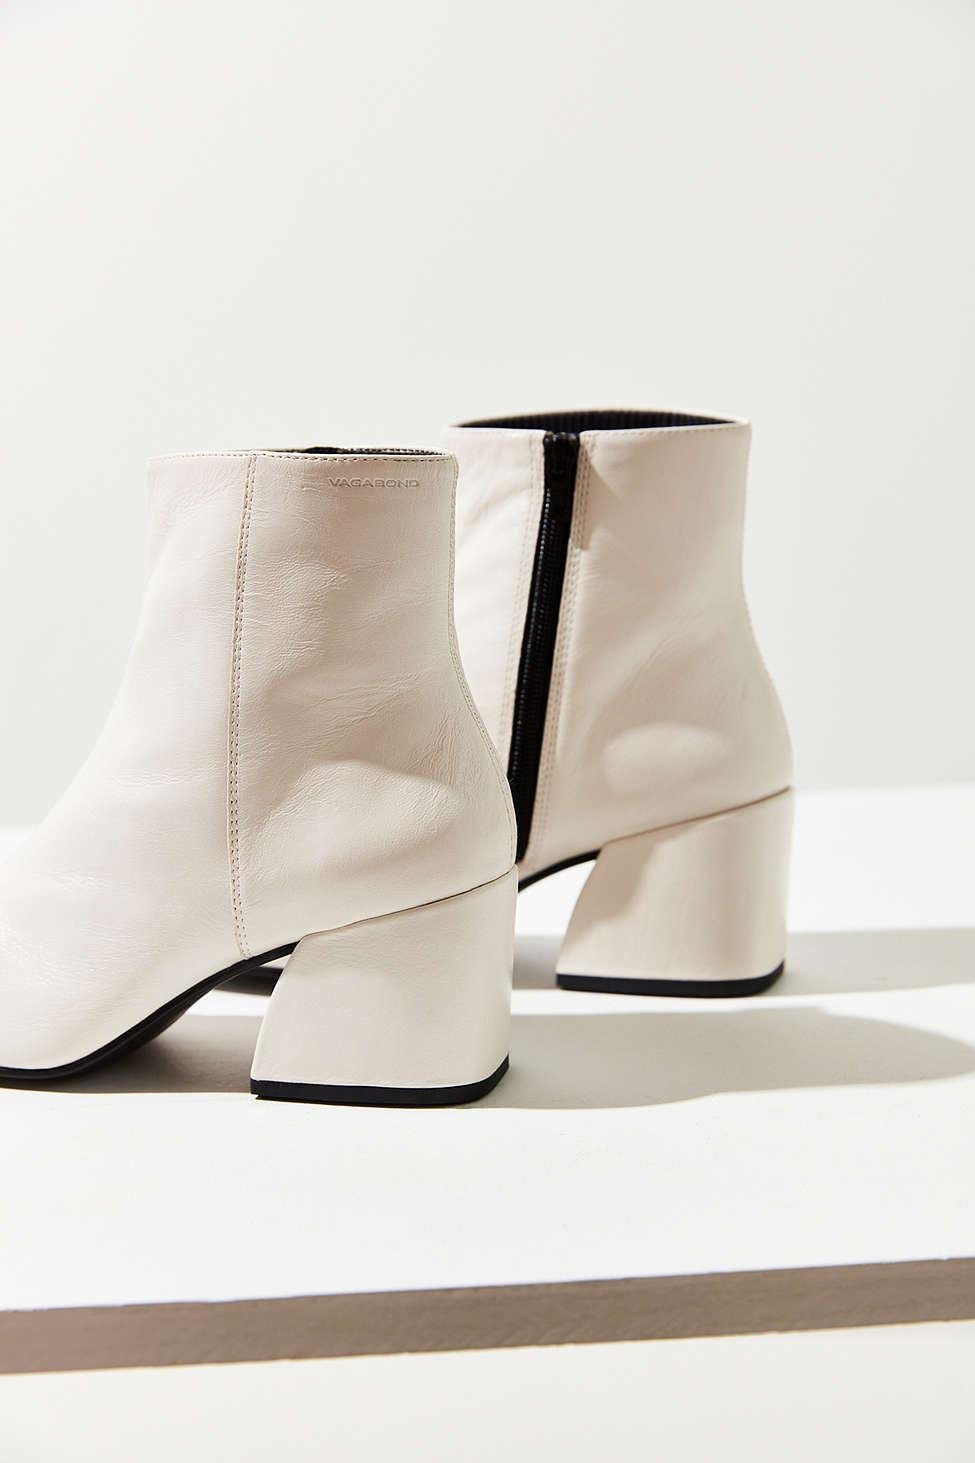 967bd579b6a22c Lyst - Vagabond Olivia Leather Boot in White